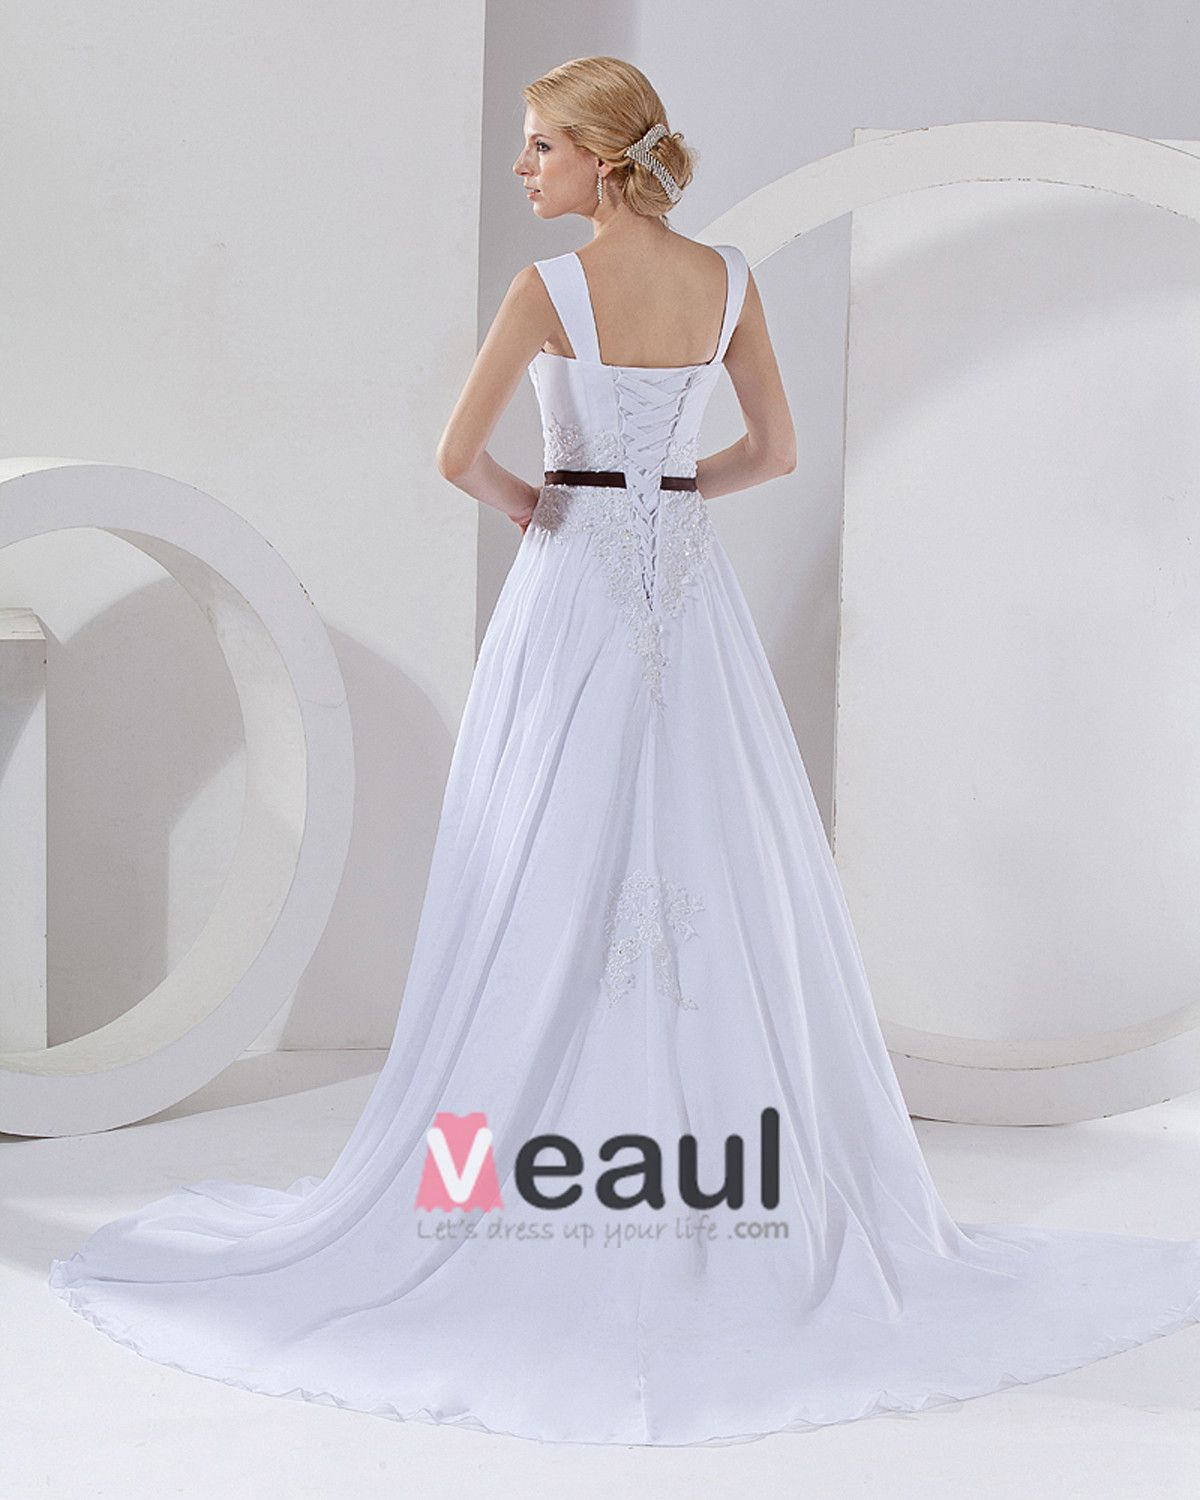 Wasit Strap Square Court A-Line Bridal Gown Wedding Dress